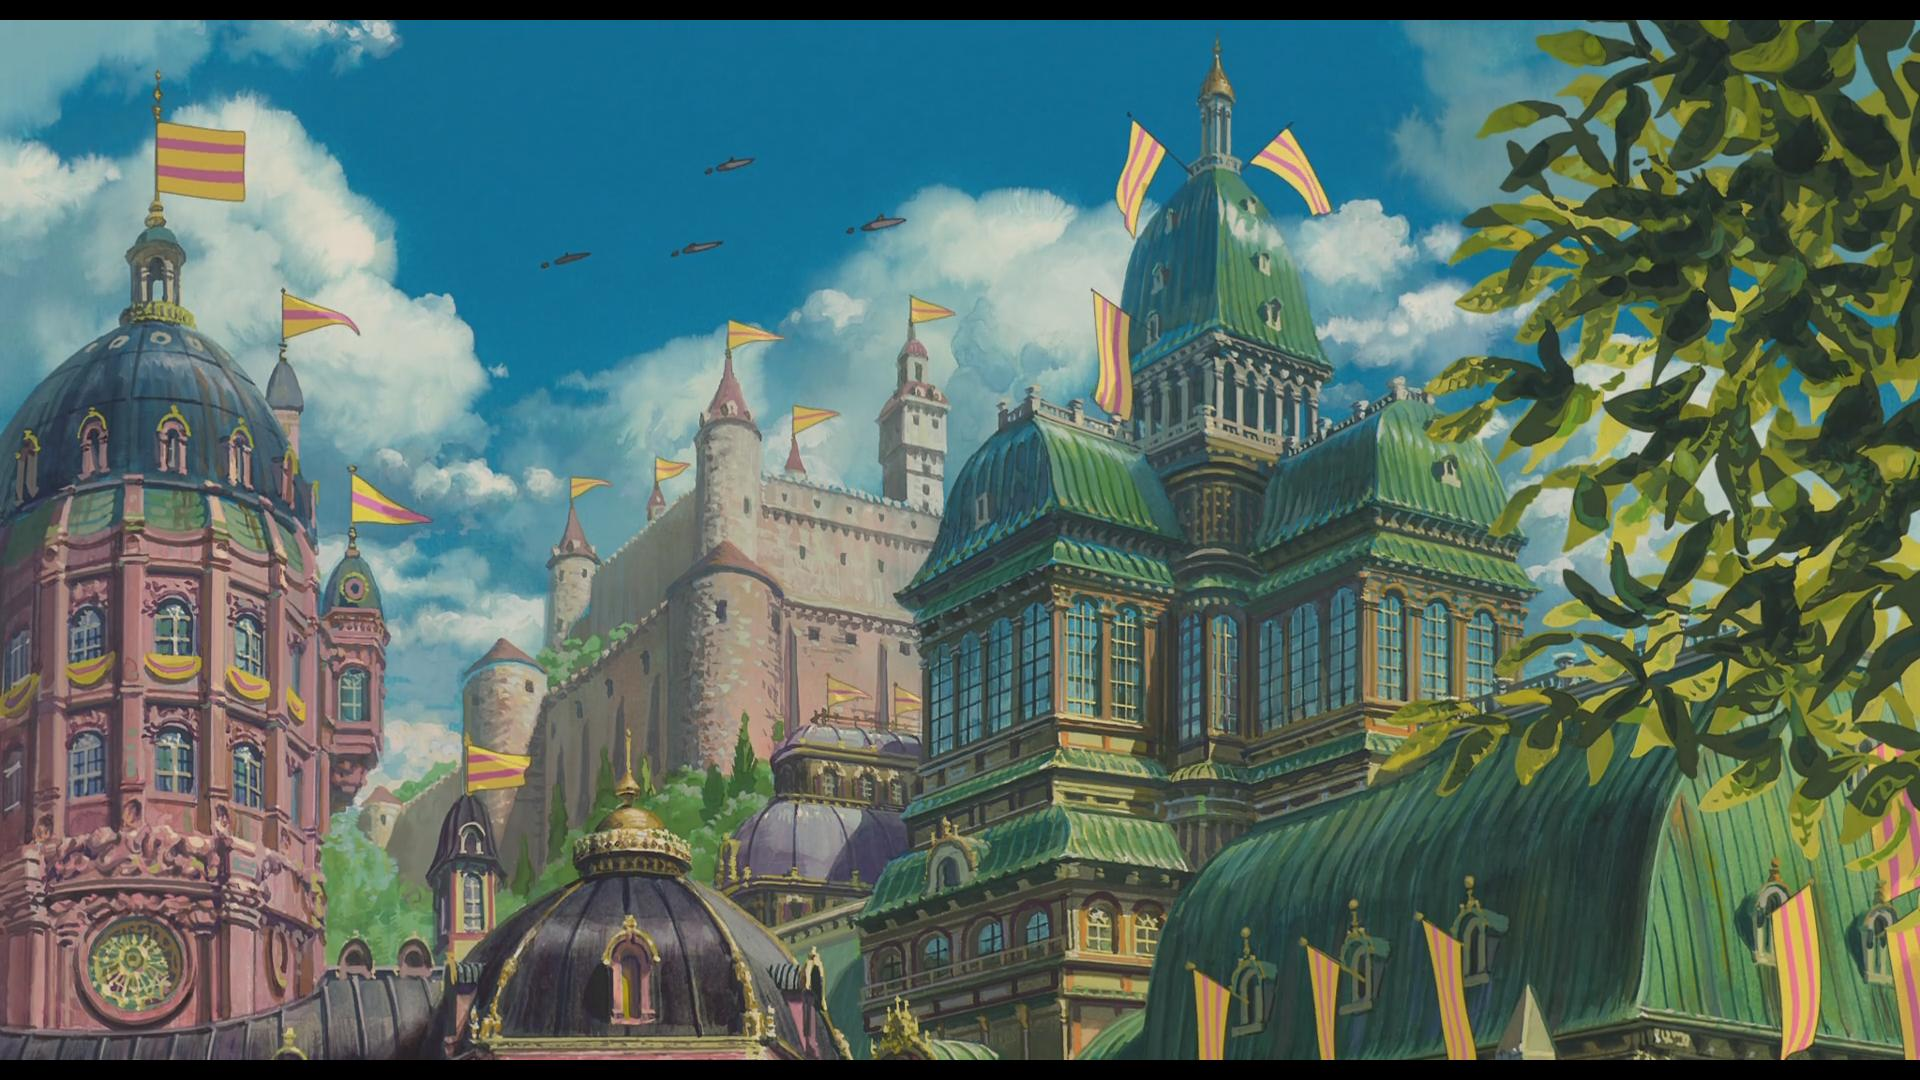 Howls Moving Castle Architecture 1920x1080 Download Hd Wallpaper Wallpapertip